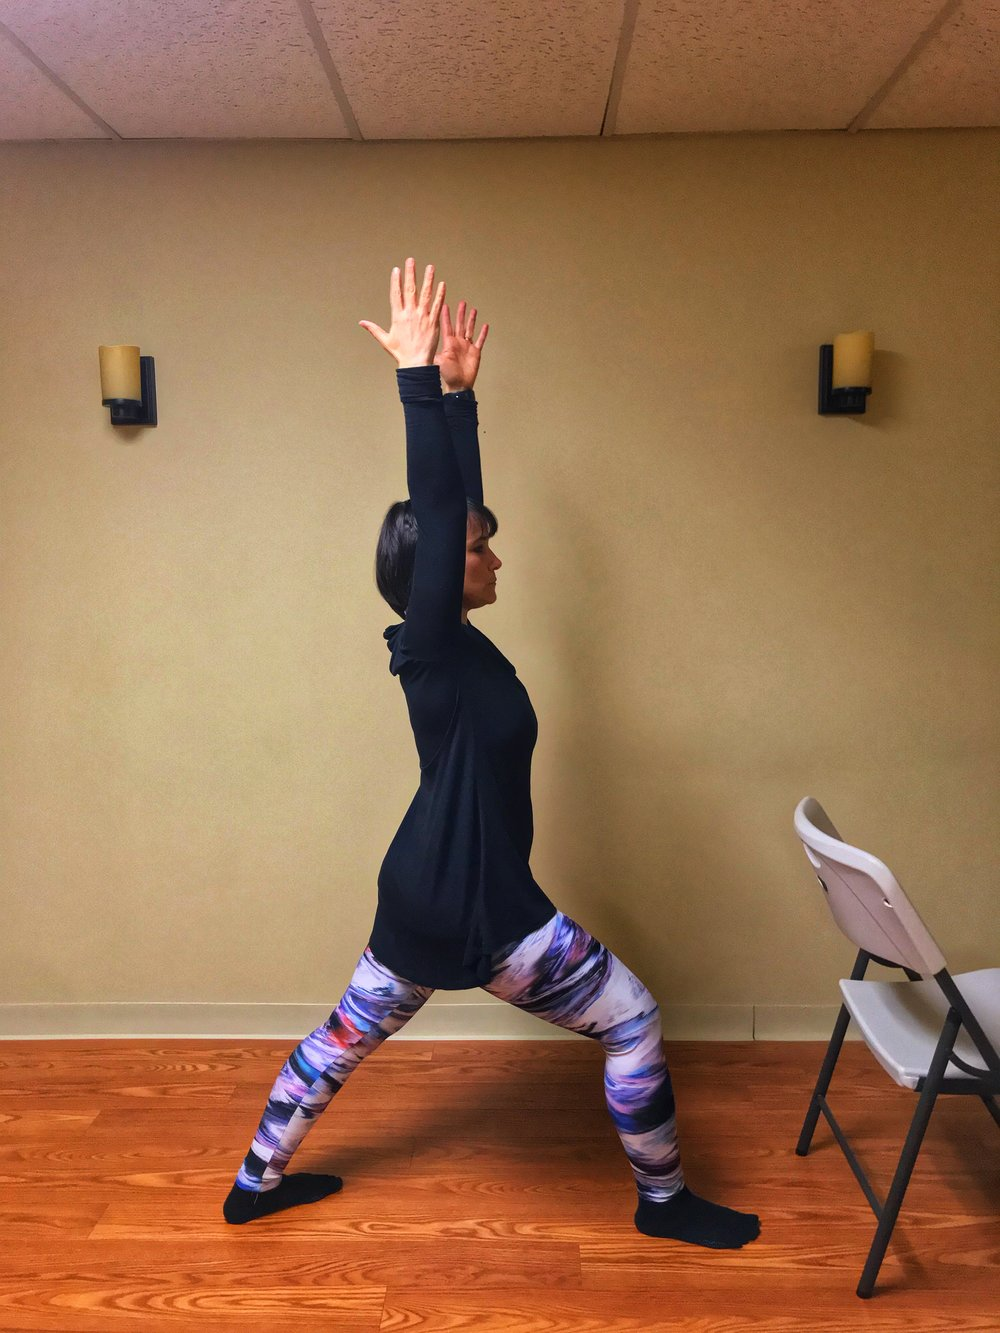 As you become stronger and more flexible, you can try this pose without a chair, raising both arms overhead. Keep the movement slow and controlled and make sure to keep your front knee over your ankle. Tighten your abdominal muscles to support your back.